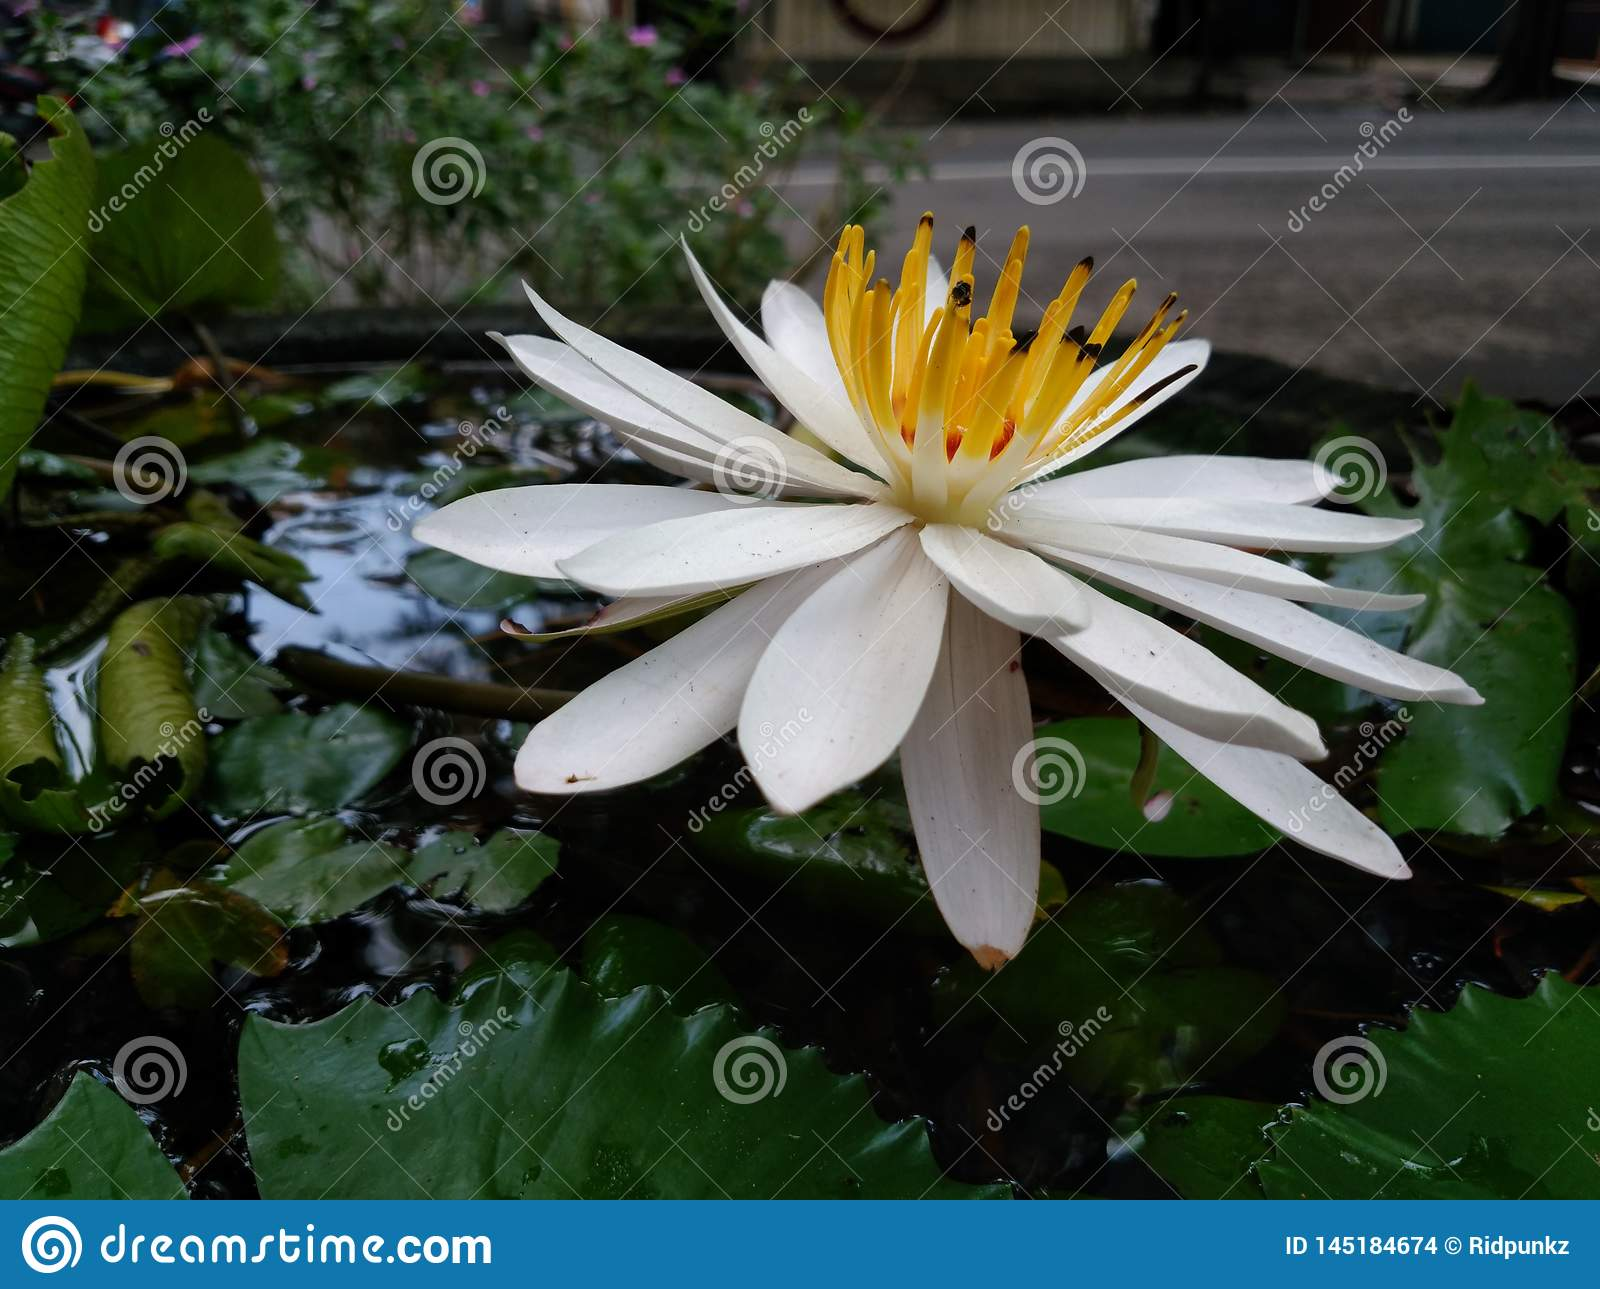 water lily blooming. white and yellow